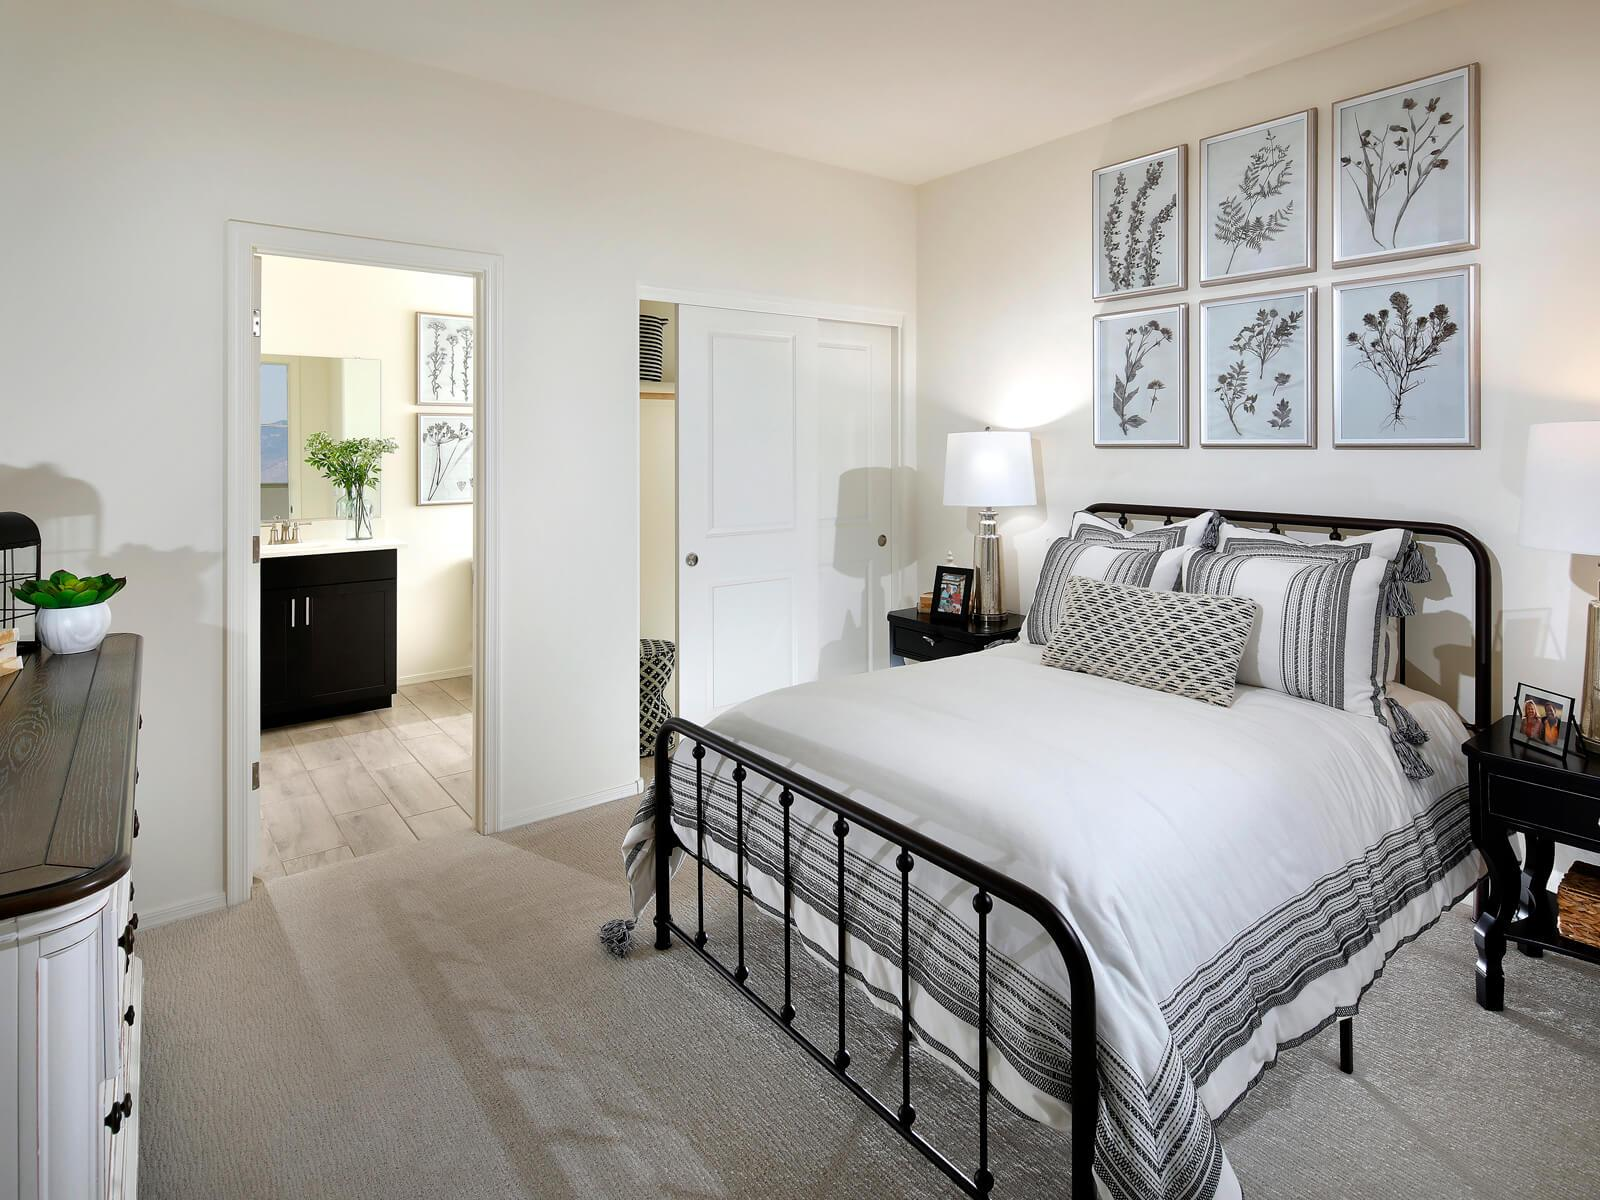 Bedroom featured in the Verde By Meritage Homes in Tucson, AZ